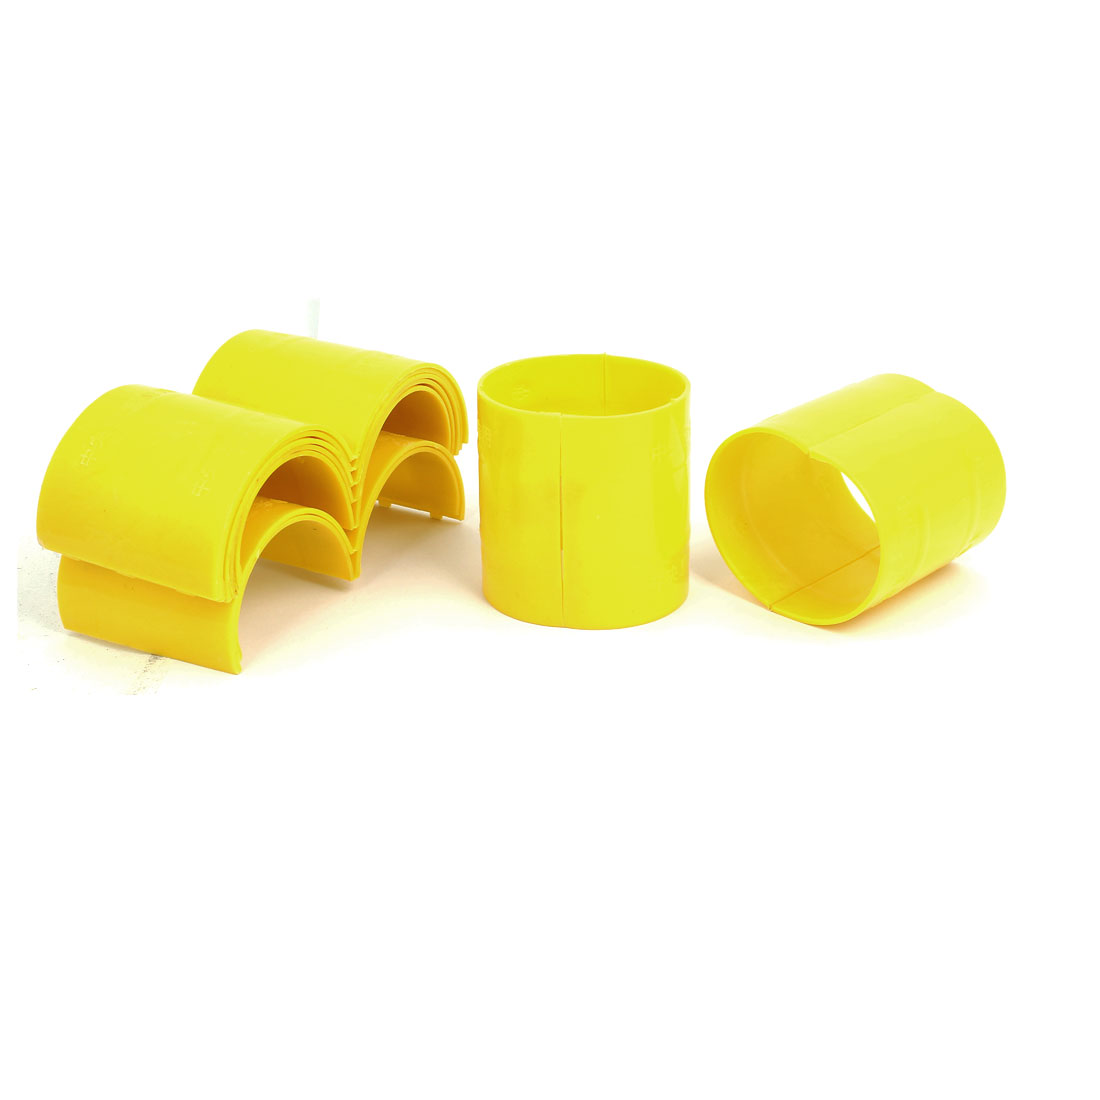 75mm Dia 2mm Thickness Central Air Conditioning Pipe Tube Clamp Yellow 9pcs